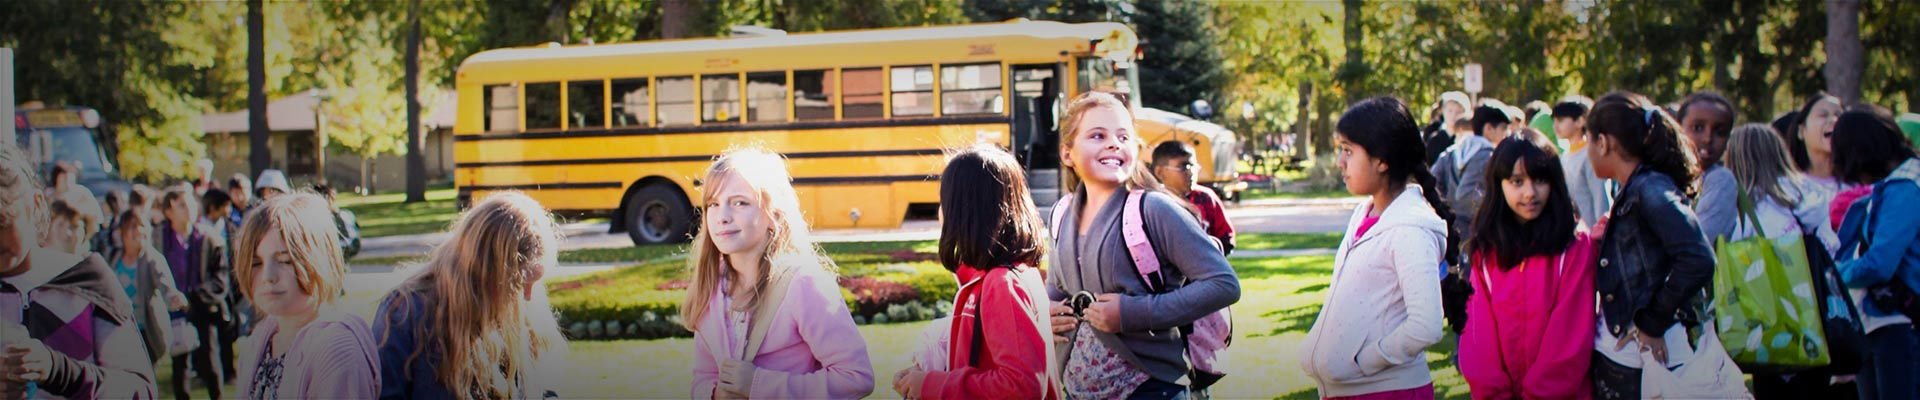 Photograph of students unboarding a school bus